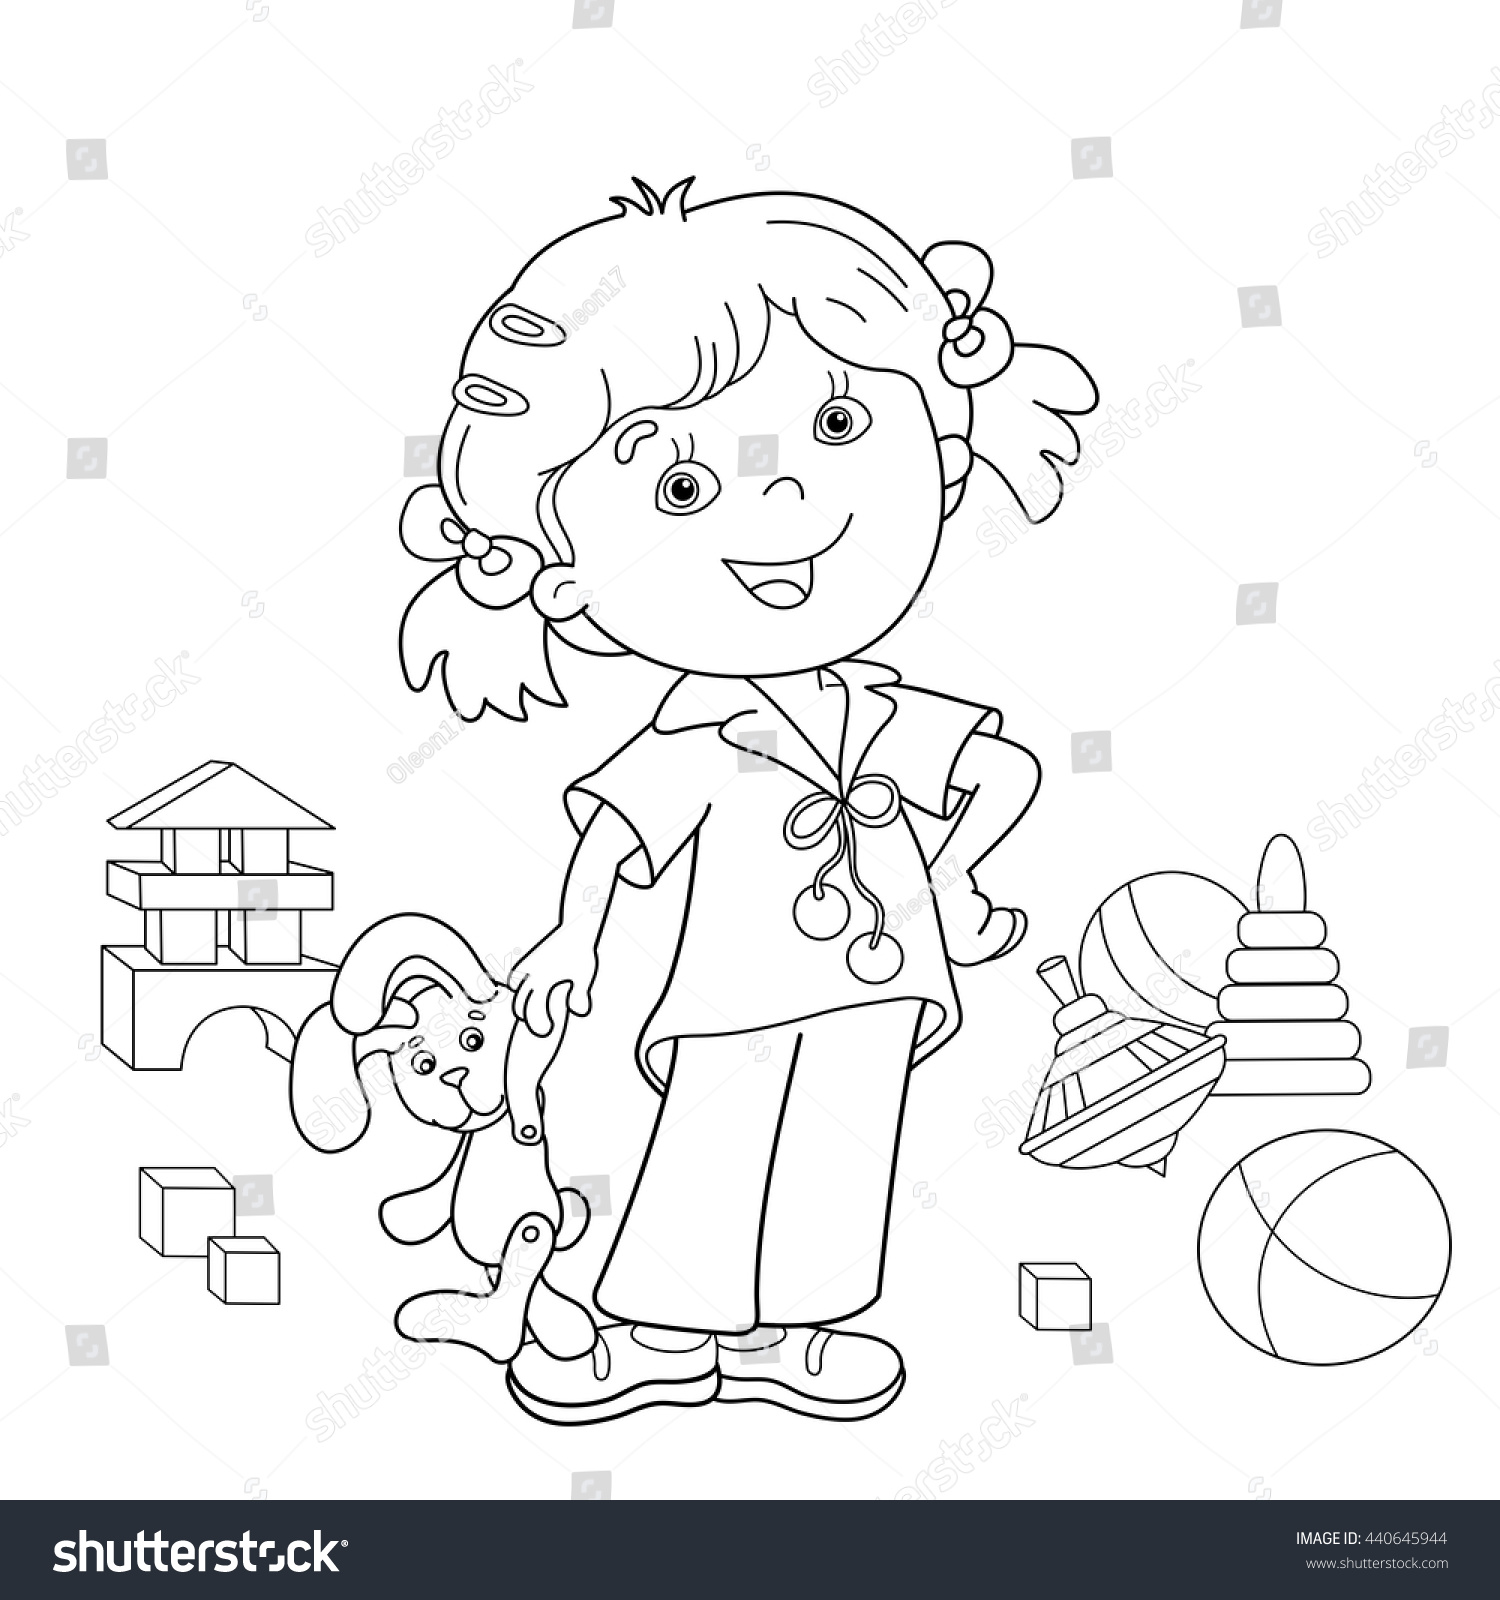 coloring page outline cartoon toys stock vector 440645944